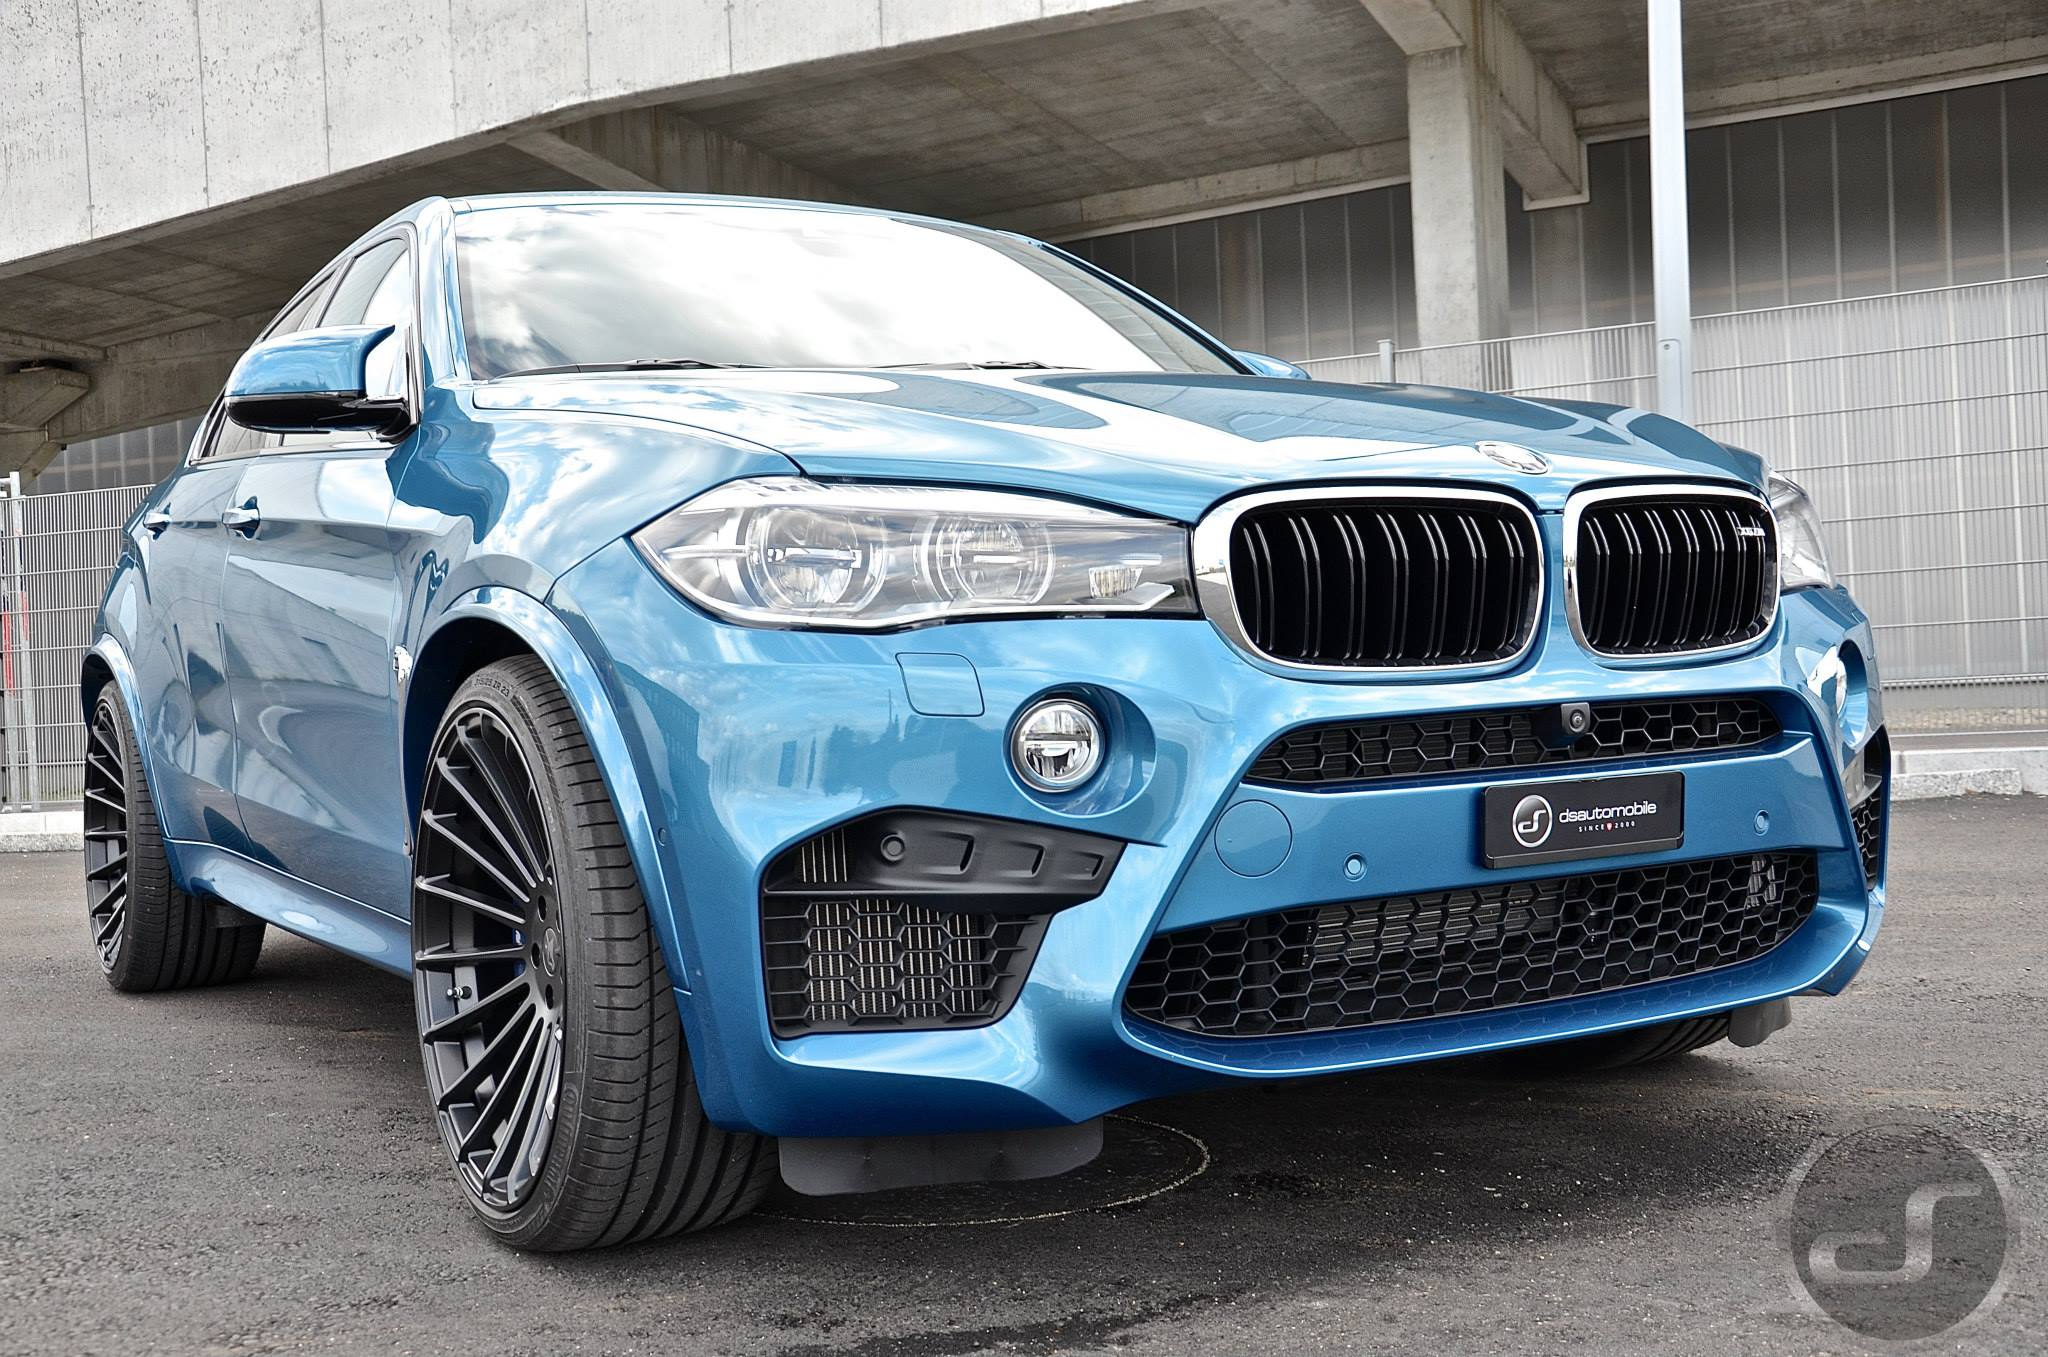 BMW X6 M by Hamann